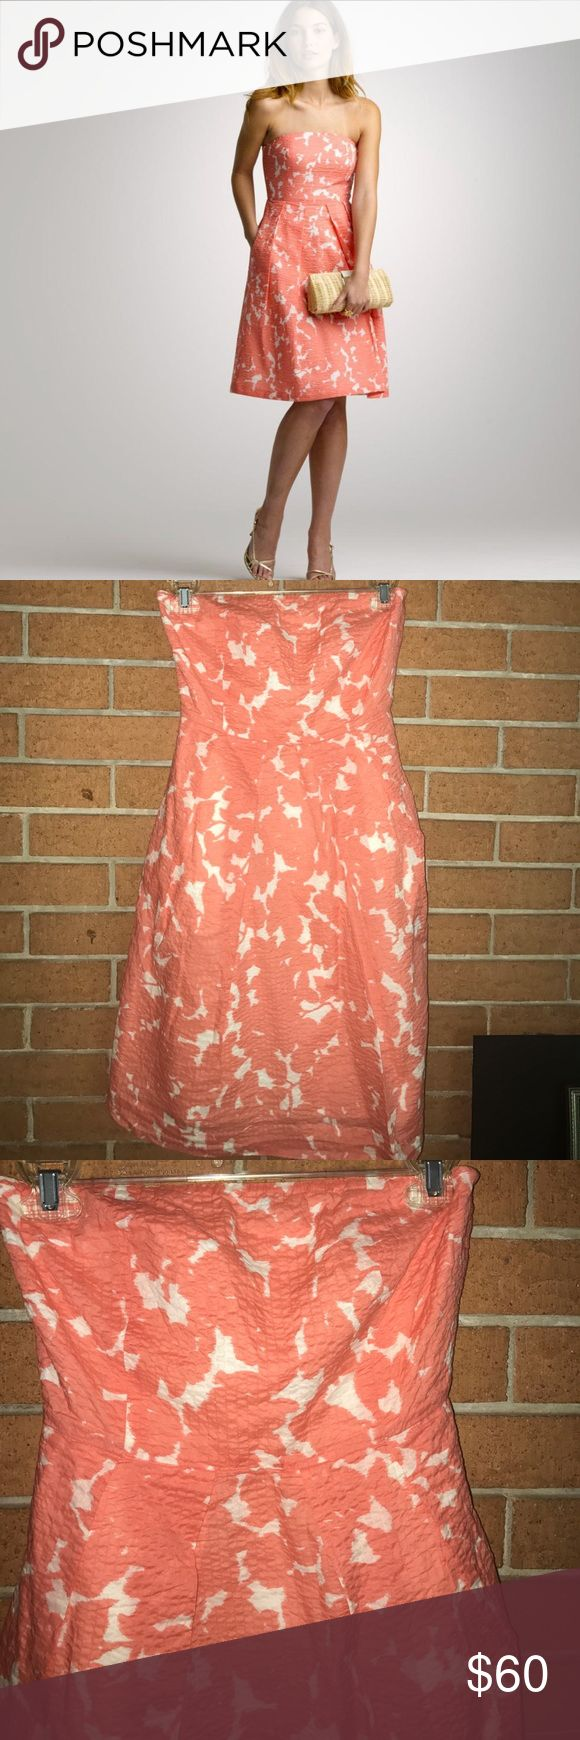 """🌷J. CREW🌷STRAPLESS EMBOSSED DRESS🌷 This is a beautiful strapless A-line dress from J.Crew well-made as we know this brand is back hidden zipper with Eye and hook closure. Rubber backing to help keep up the dress also comes with built in bra strap for a better fit. 100% cotton. Coral and white. Measurements taken flat bust 14"""" waist 12 1/2"""" hips free length 29"""" perfect for any location including weddings!! J. Crew Dresses Strapless"""